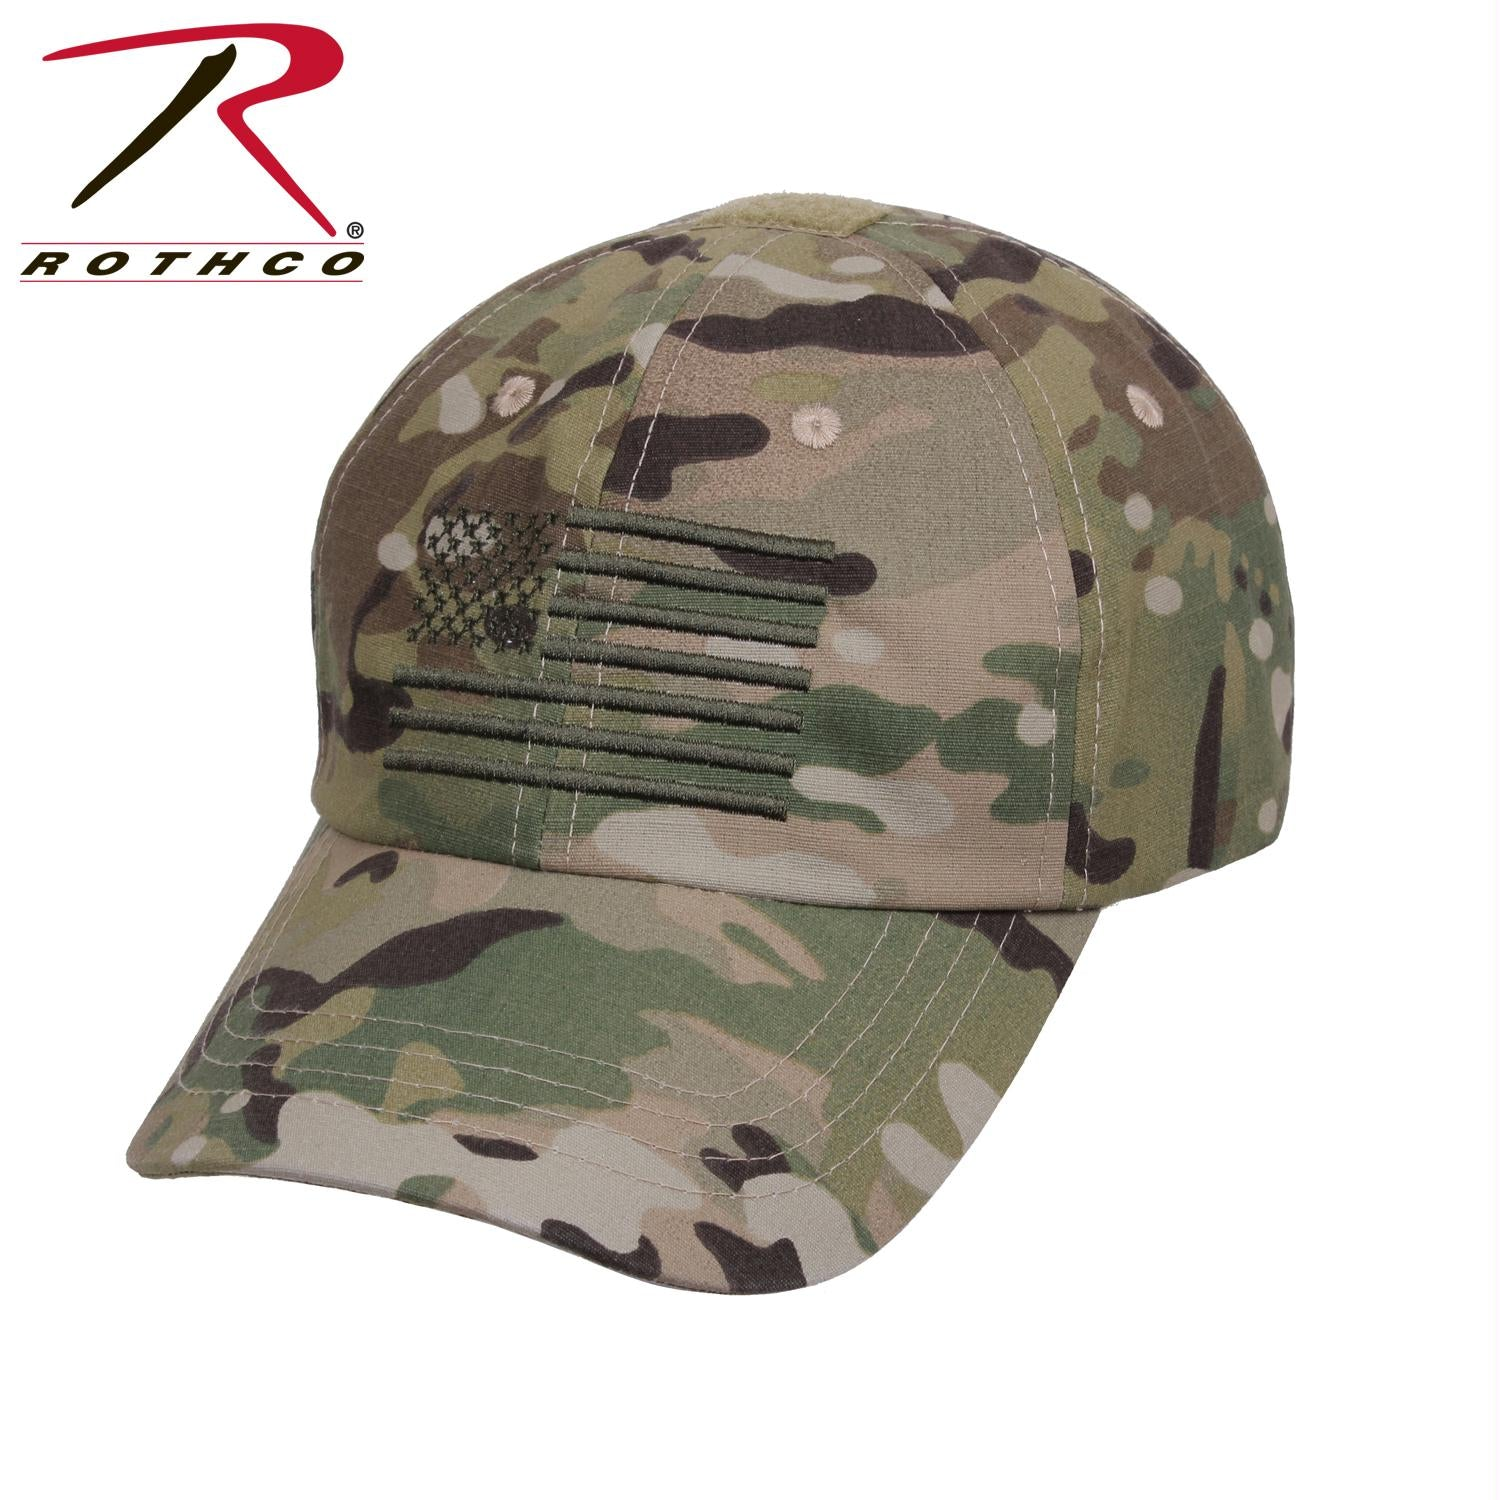 Rothco Tactical Operator Cap With US Flag - MultiCam / One Size